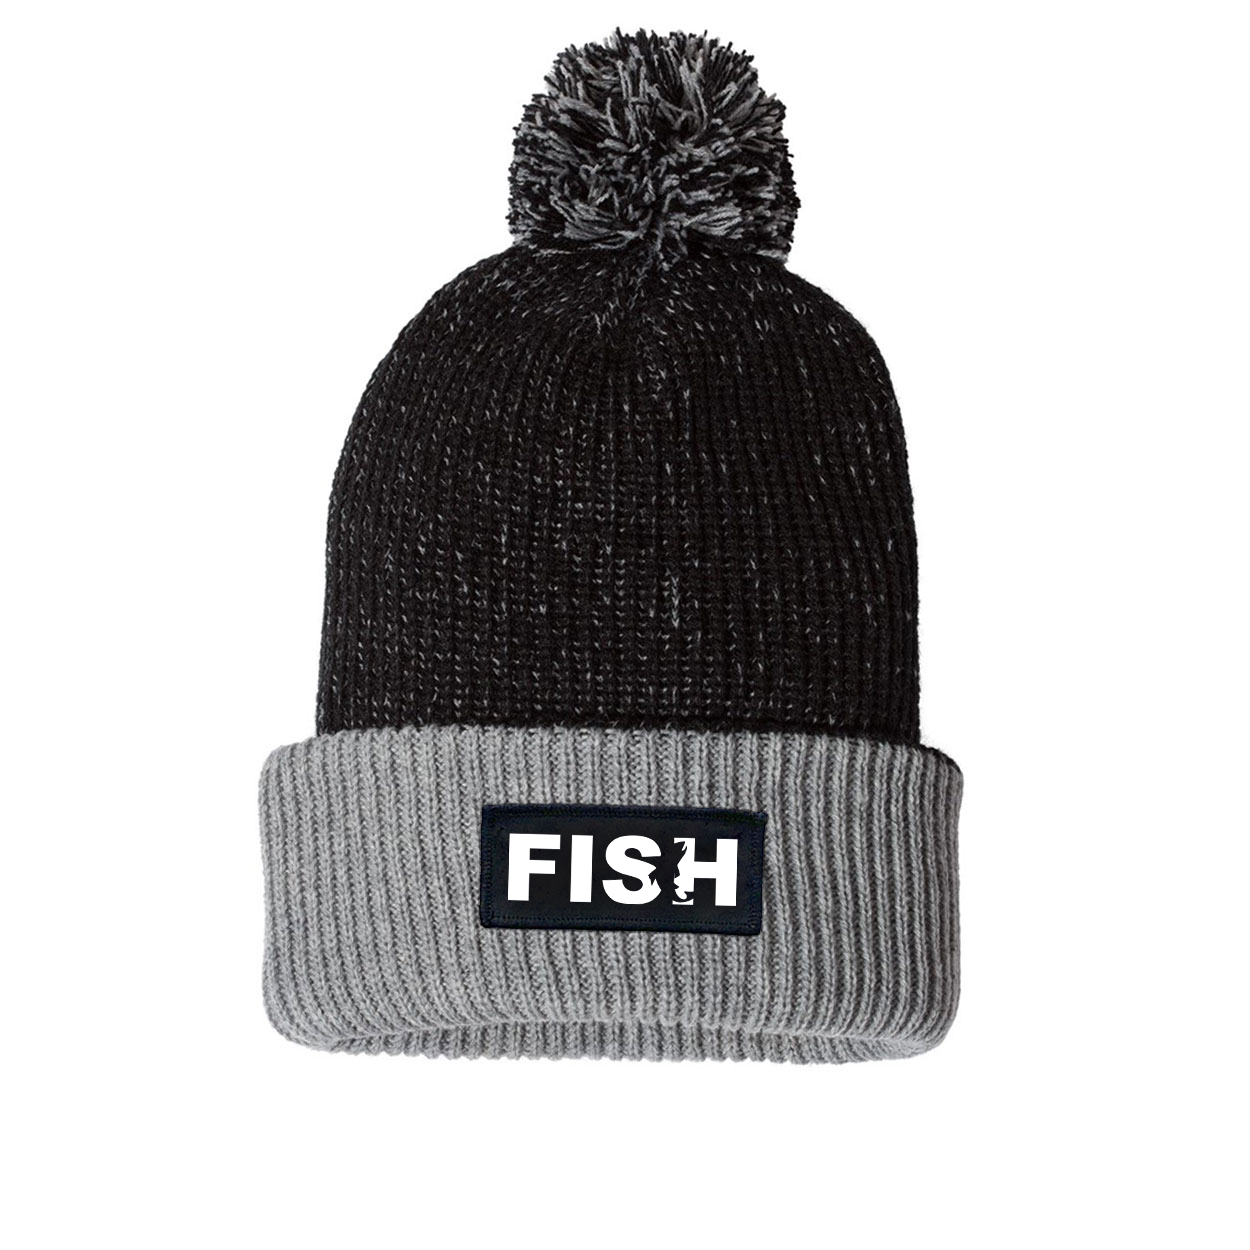 Fish Catch Logo Night Out Woven Patch Roll Up Pom Knit Beanie Black/Gray (White Logo)